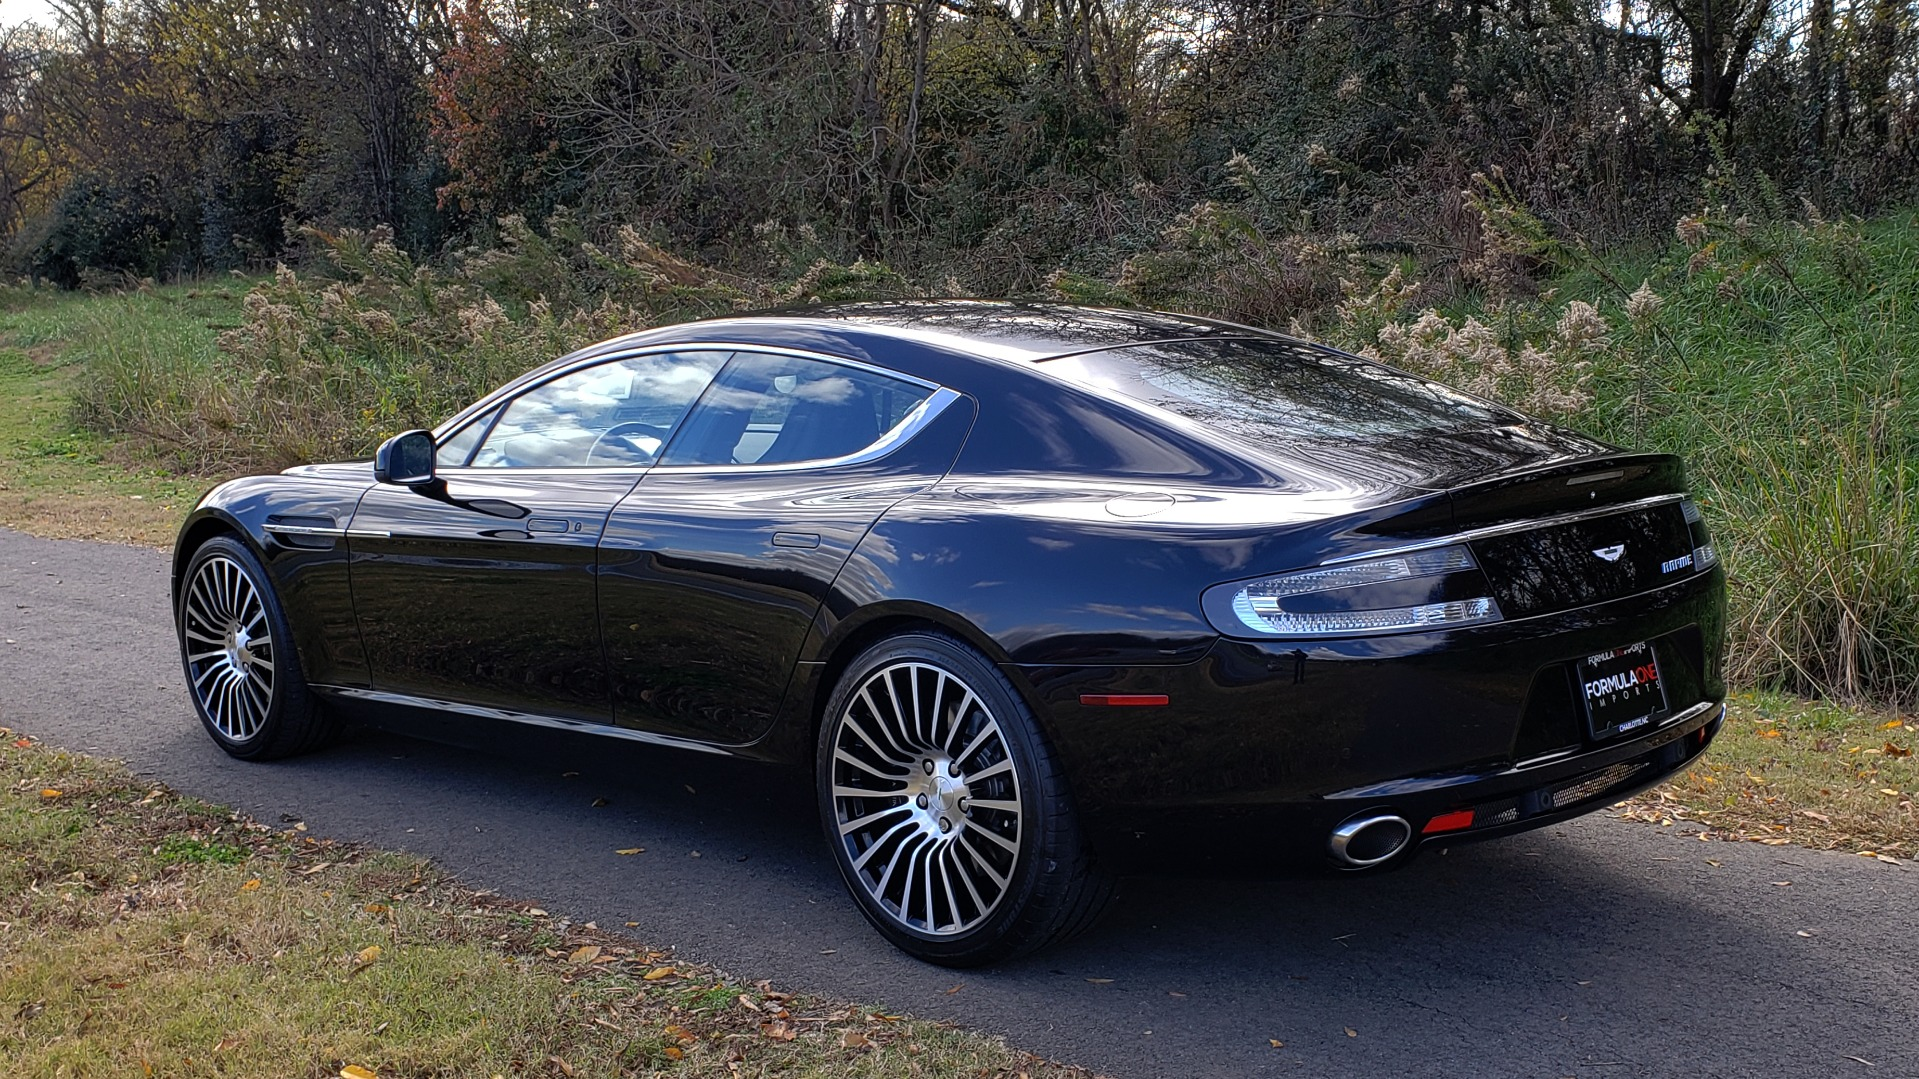 Used 2012 Aston Martin RAPIDE LUXURY 6.0L V12 / NAV / B&O SND / ENTERTAINMENT / REARVIEW for sale Sold at Formula Imports in Charlotte NC 28227 3